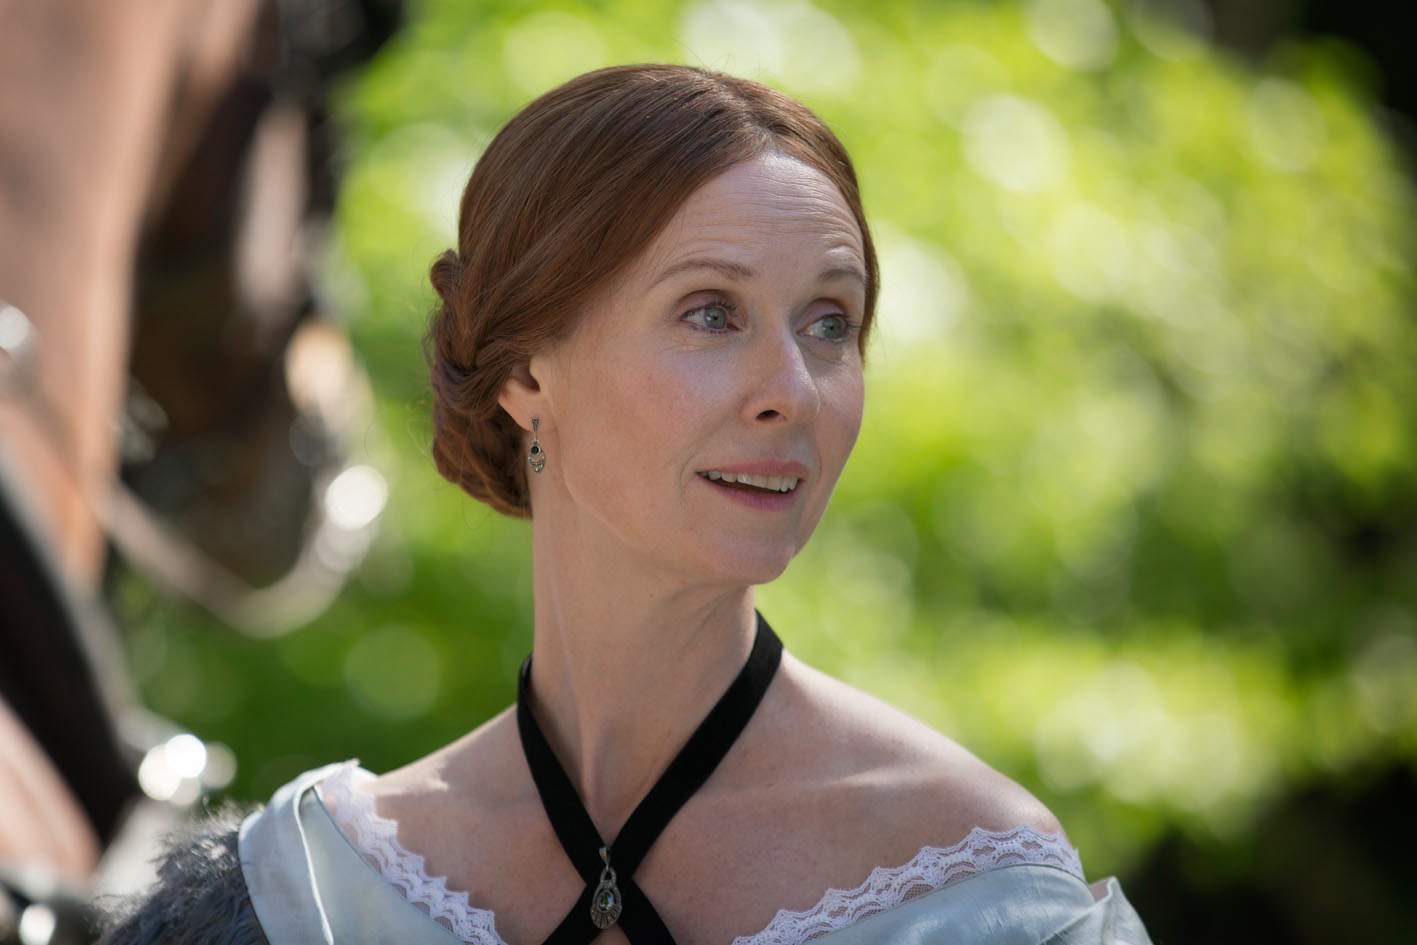 """Cynthia Nixon as Emily Dickinson in """"A Quiet Passion."""" (Courtesy Hurricane Films/Music Box Films)"""